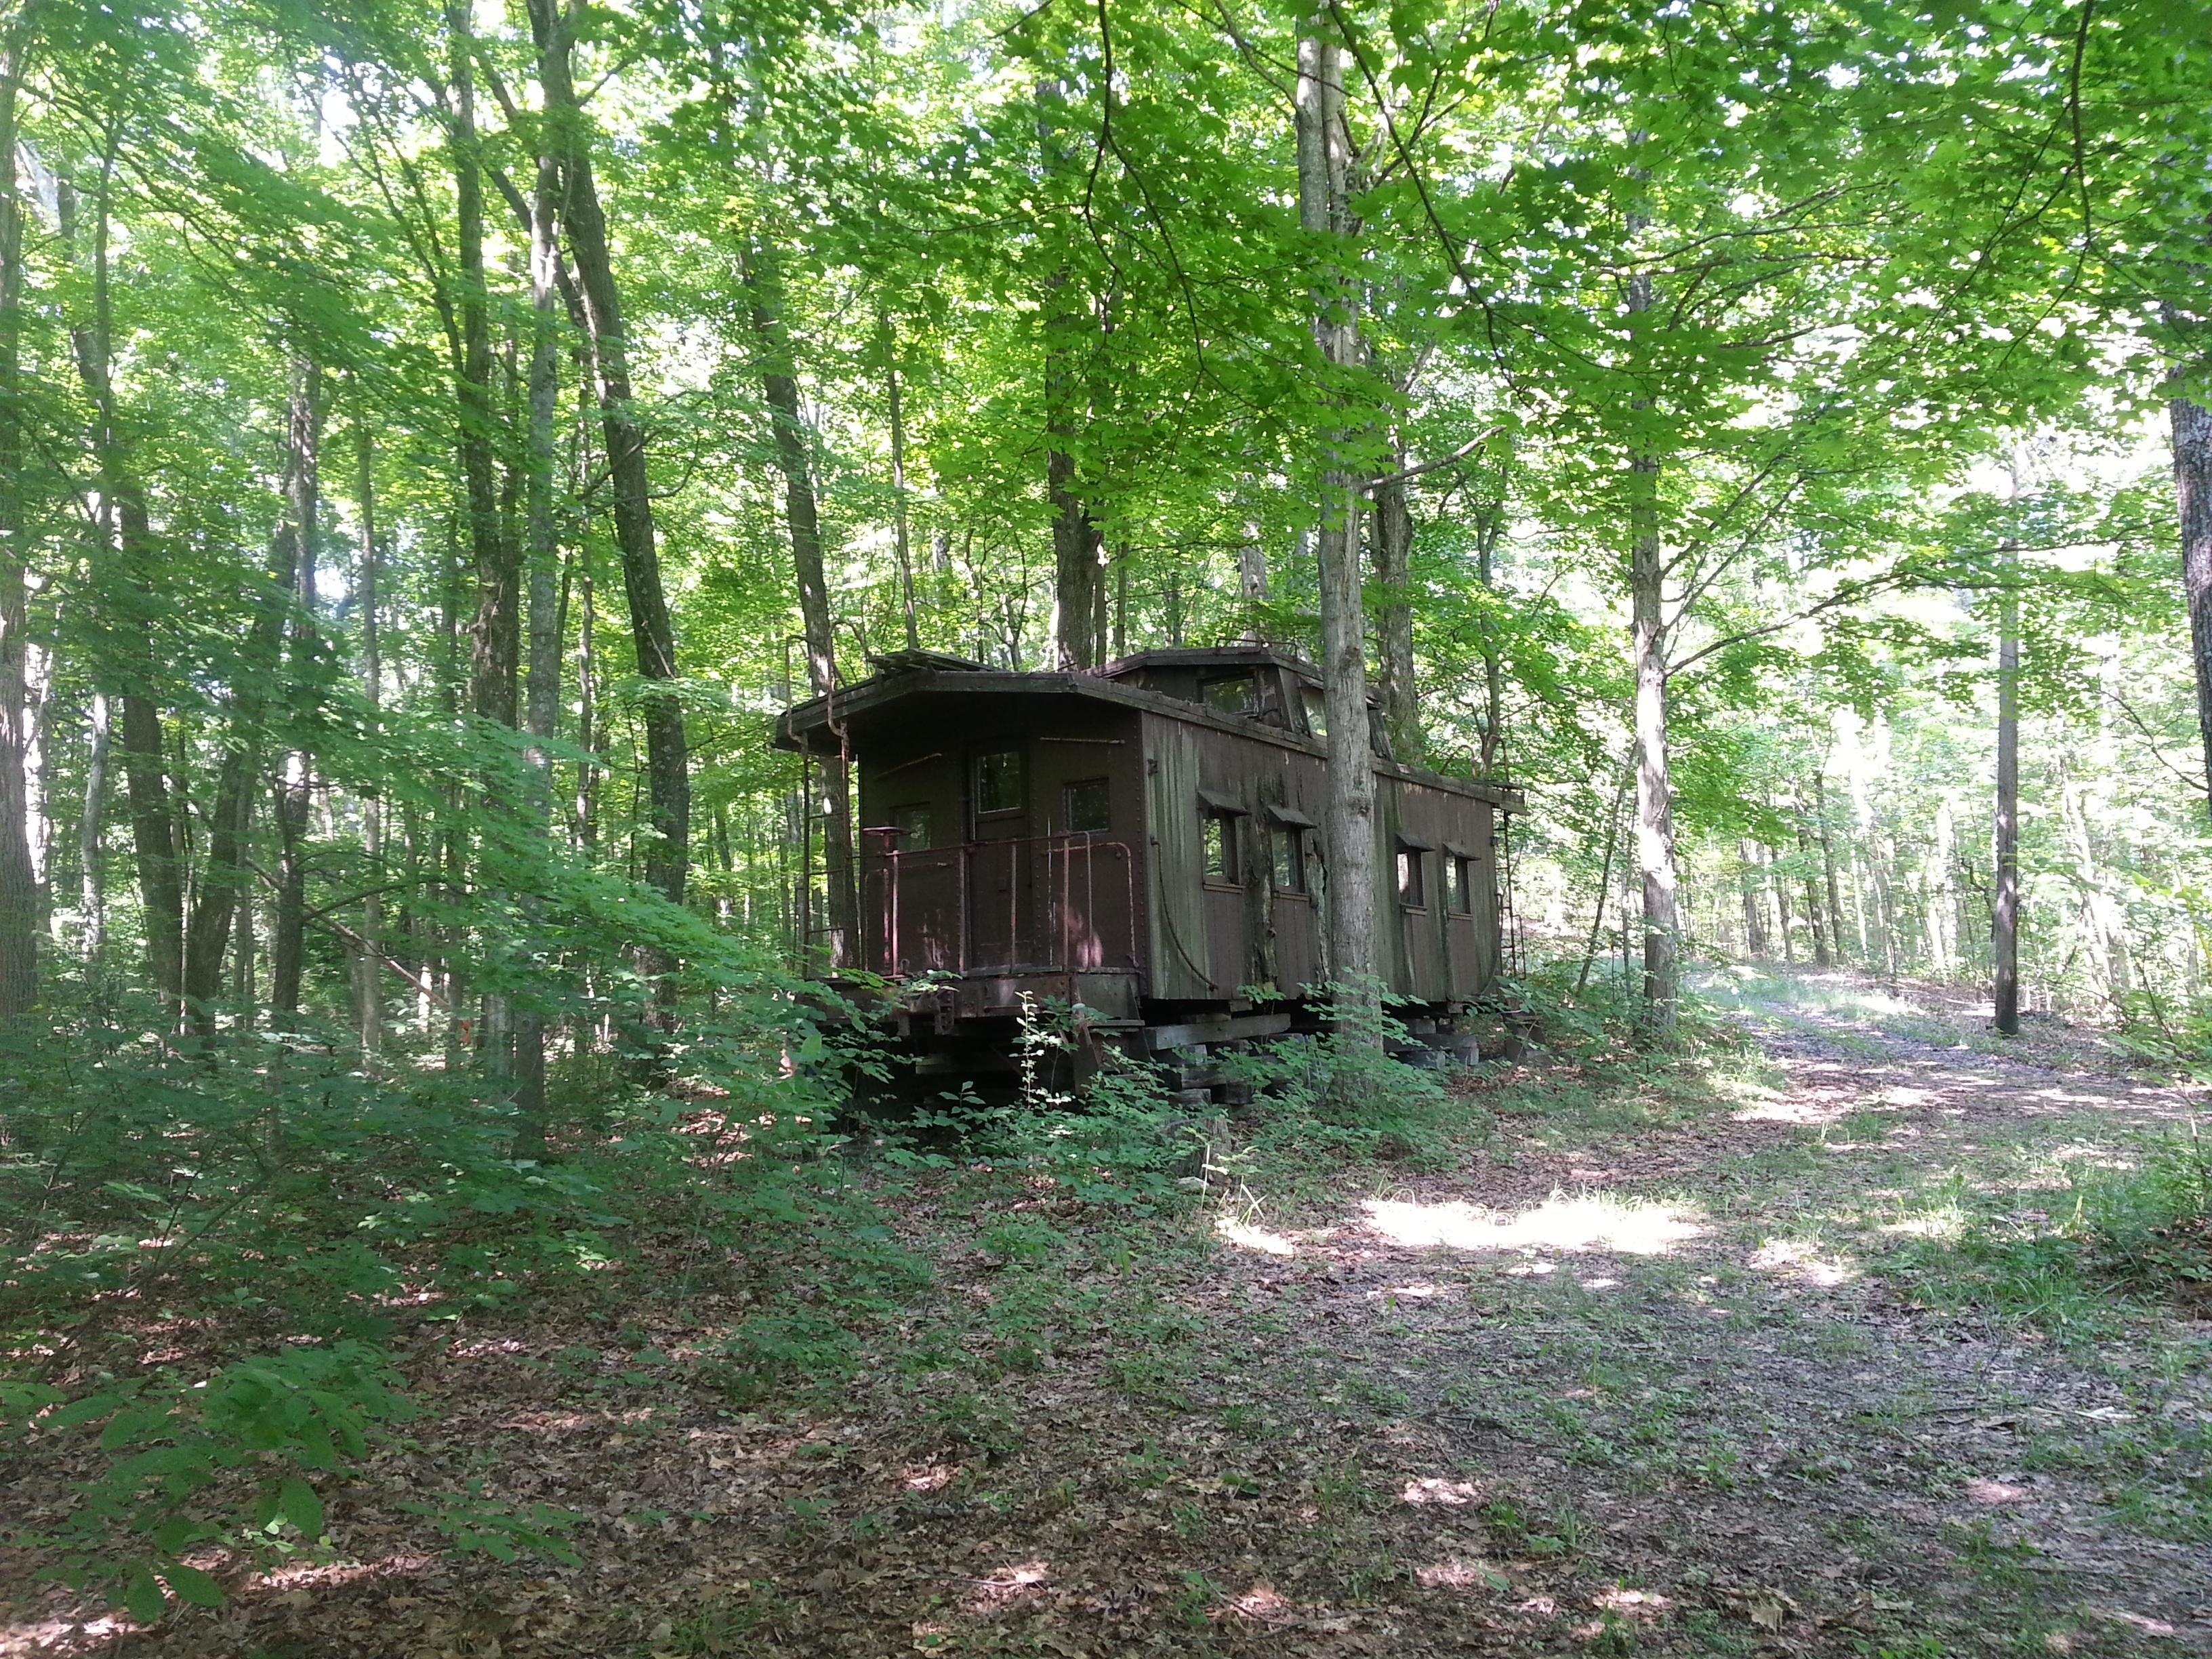 Caboose In The Woods [3264X2448] [Oc]